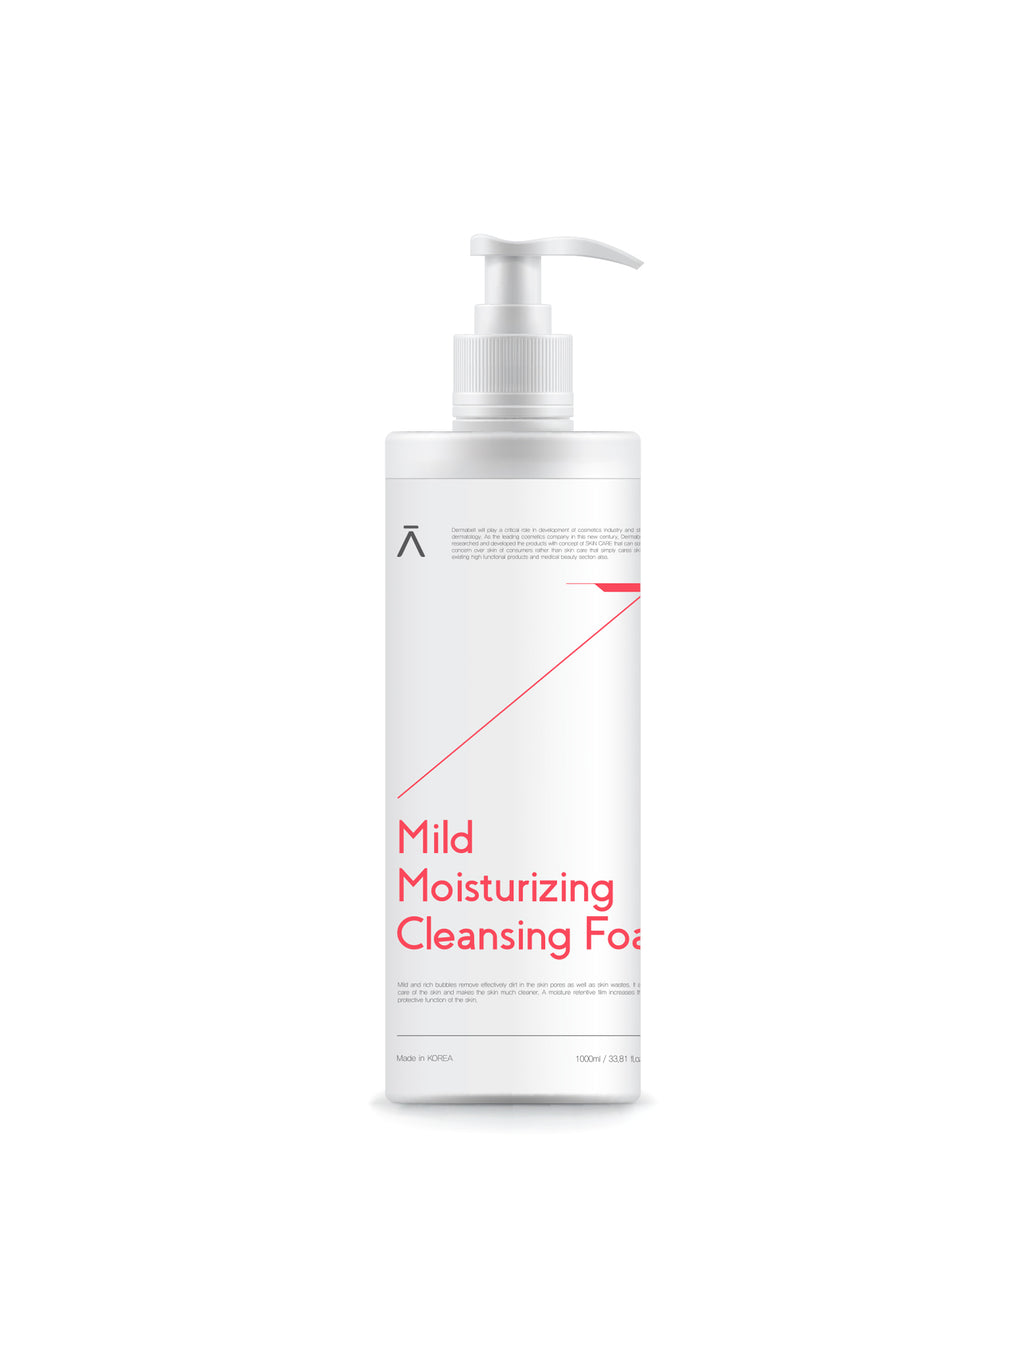 Mild Moisturizing Cleansing Foam (Soft & Moist Facial Foam) Cleanser by DERMABELL PRO